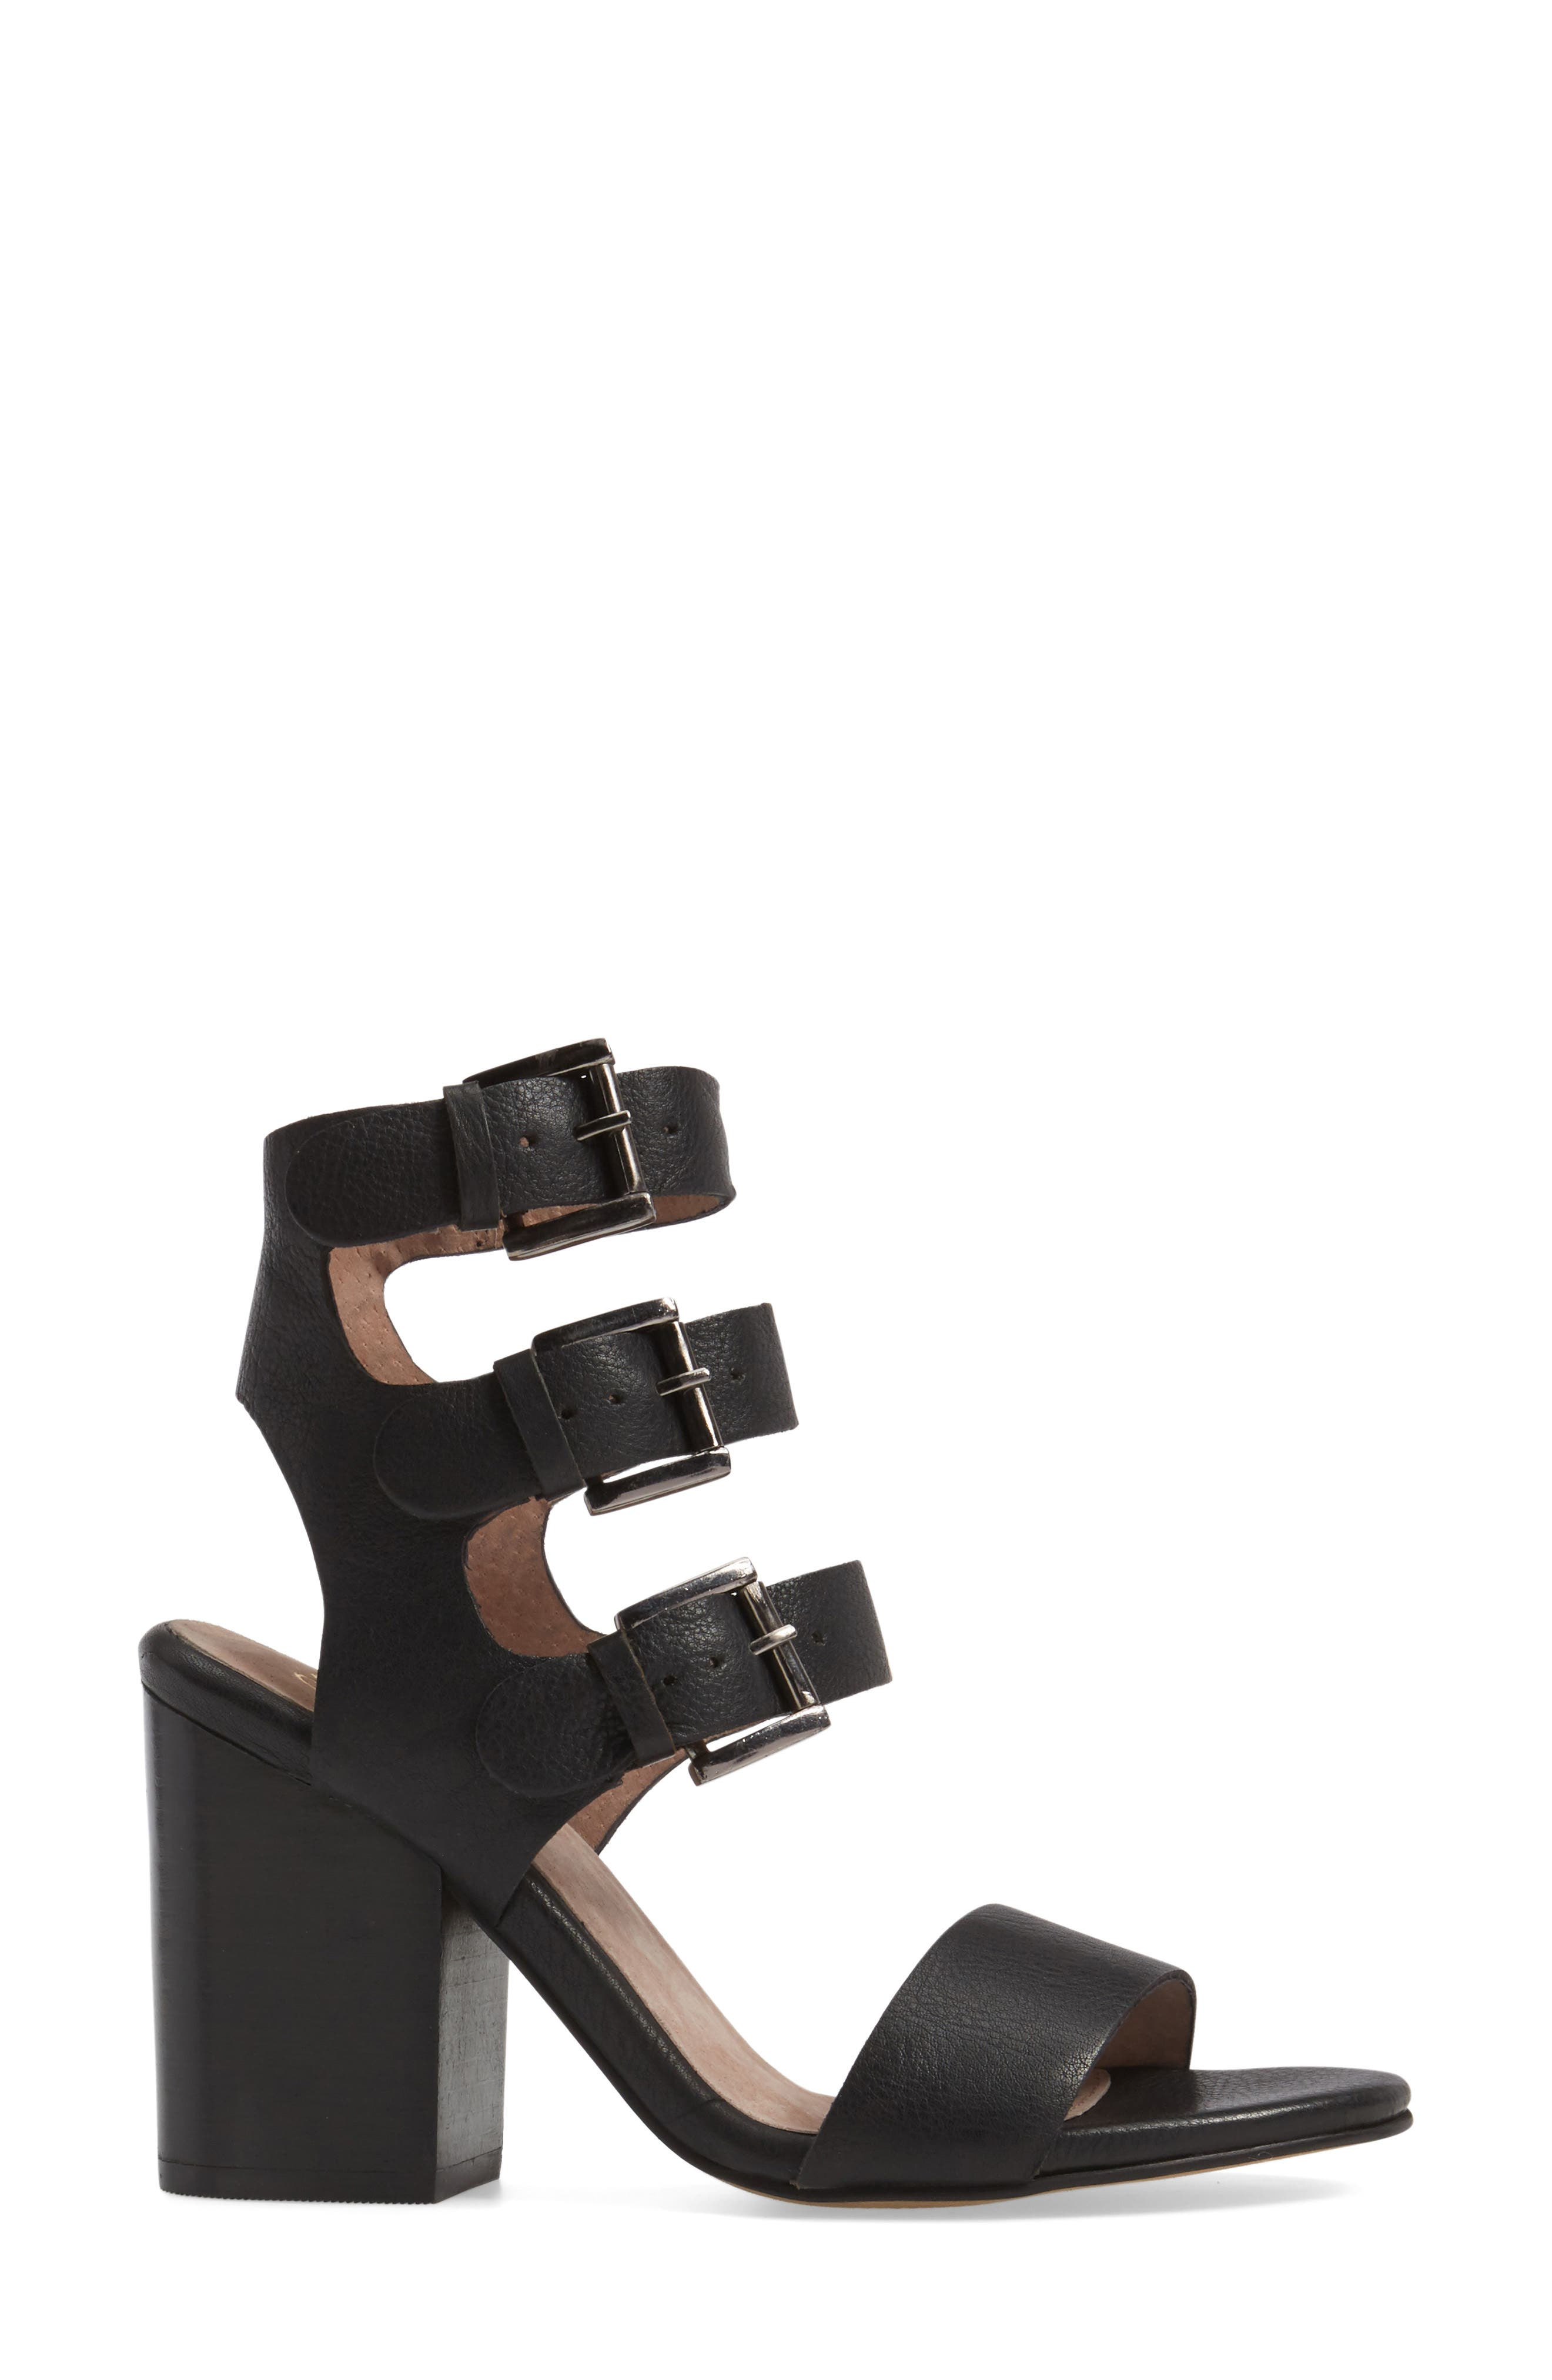 Dilly Dally Sandal,                             Alternate thumbnail 3, color,                             Black Leather